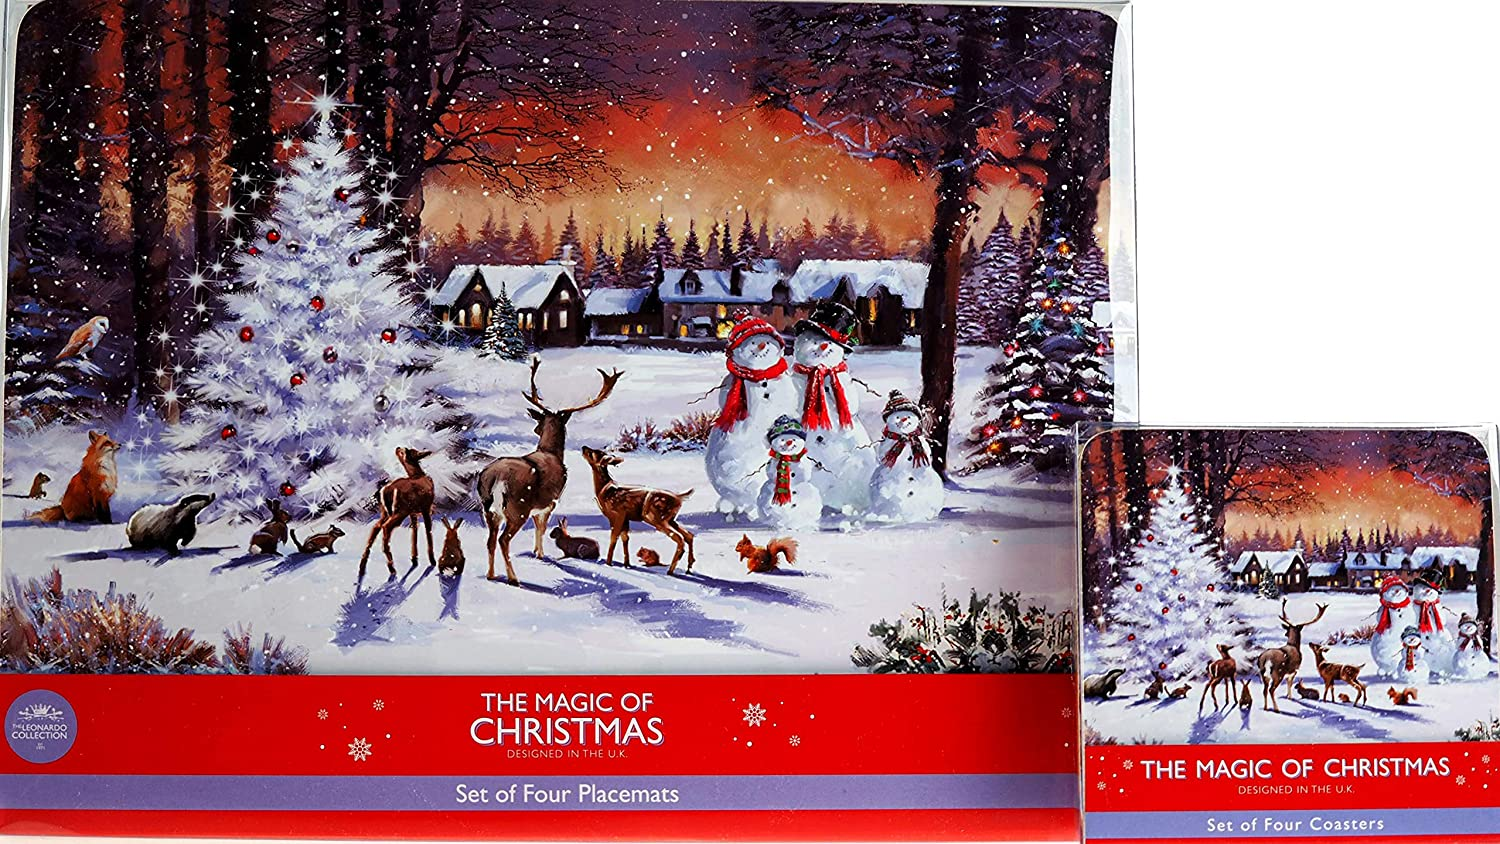 There is Snow Place Like Home For Christmas Set Of Four Coasters Red Color